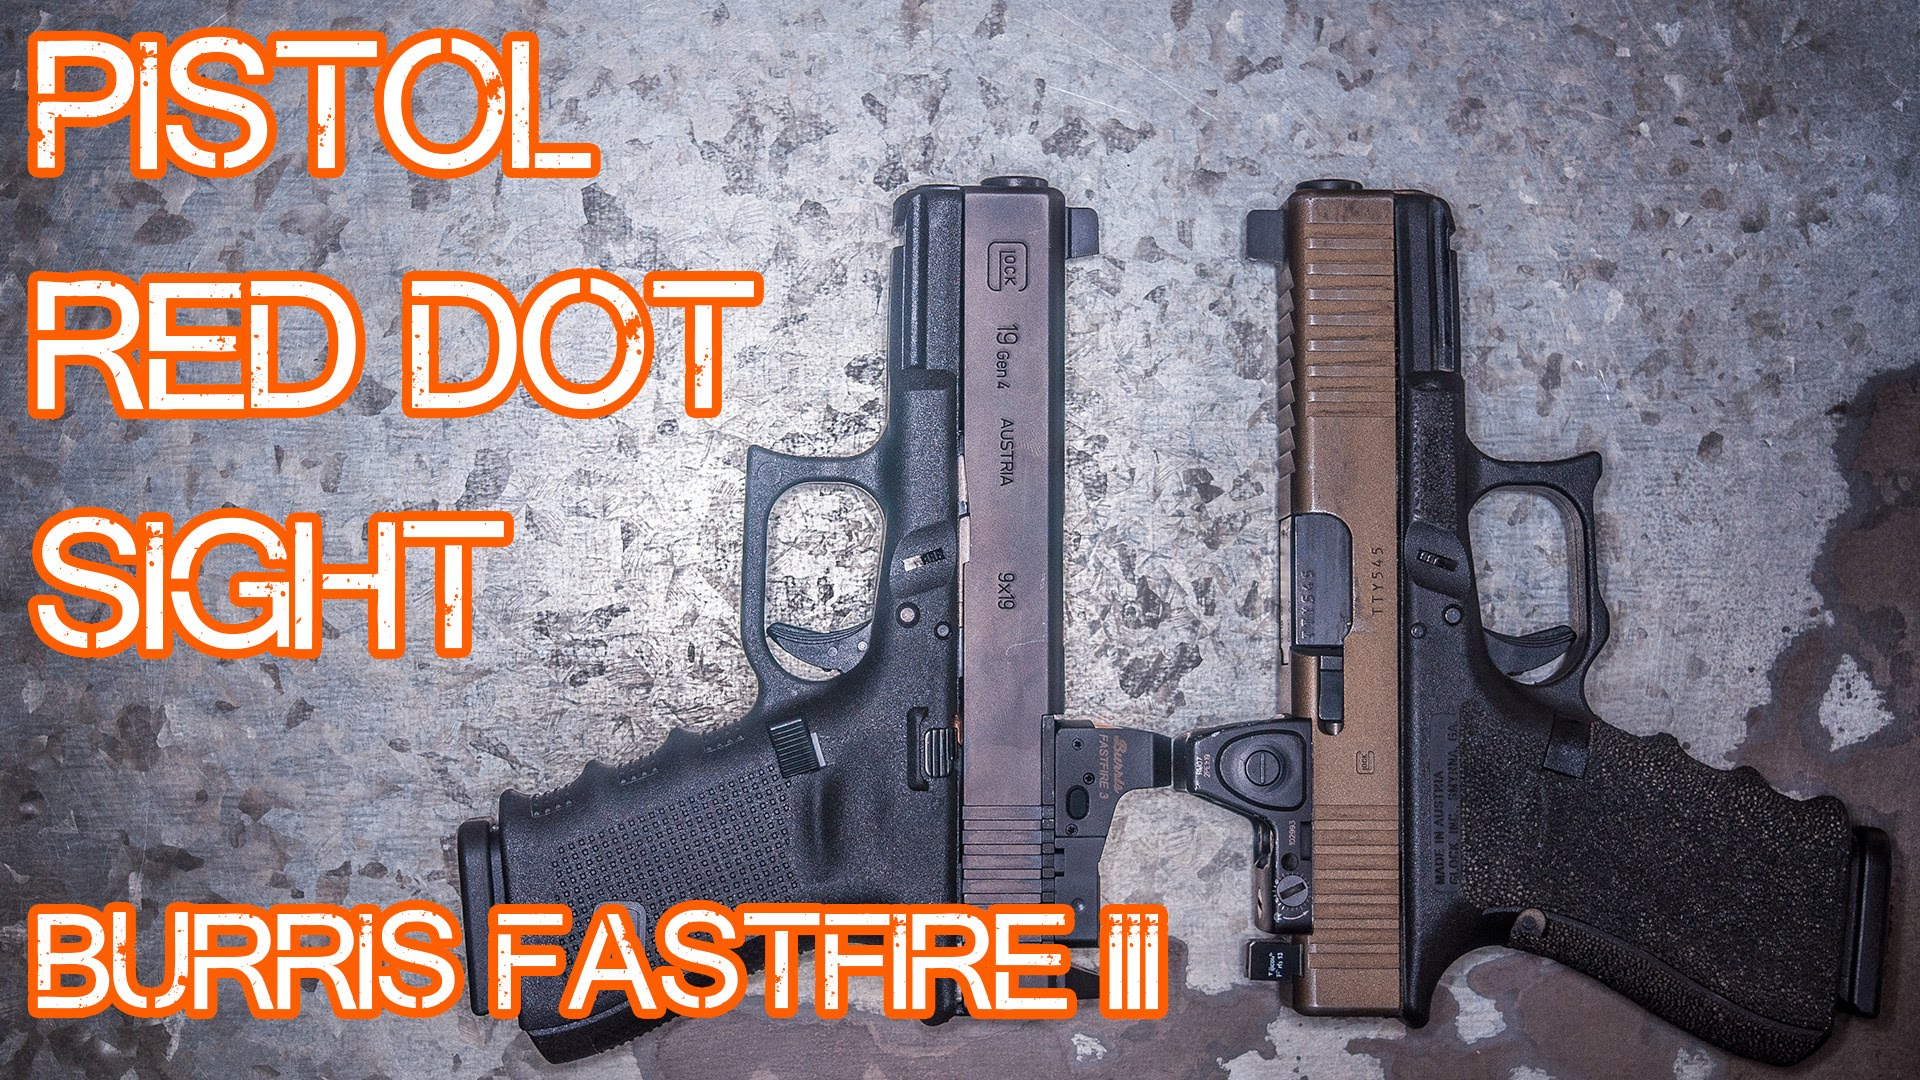 Pistol Red Dot Sight Thoughts -  Burris FastFire III Review vs Trijicon RMR